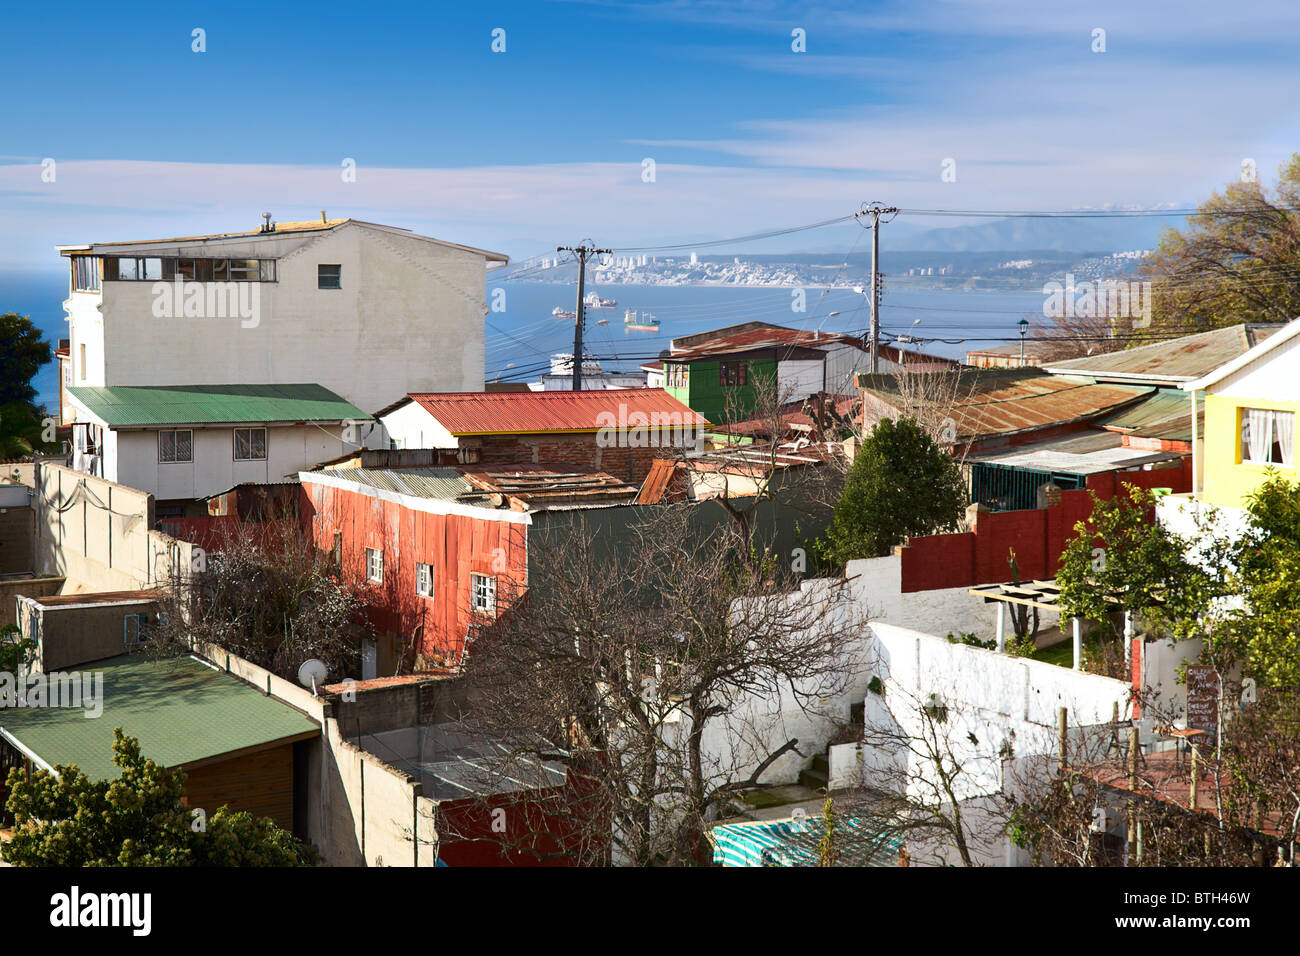 view from Pablo Neruda Museum in Valparaiso, Chile - Stock Image